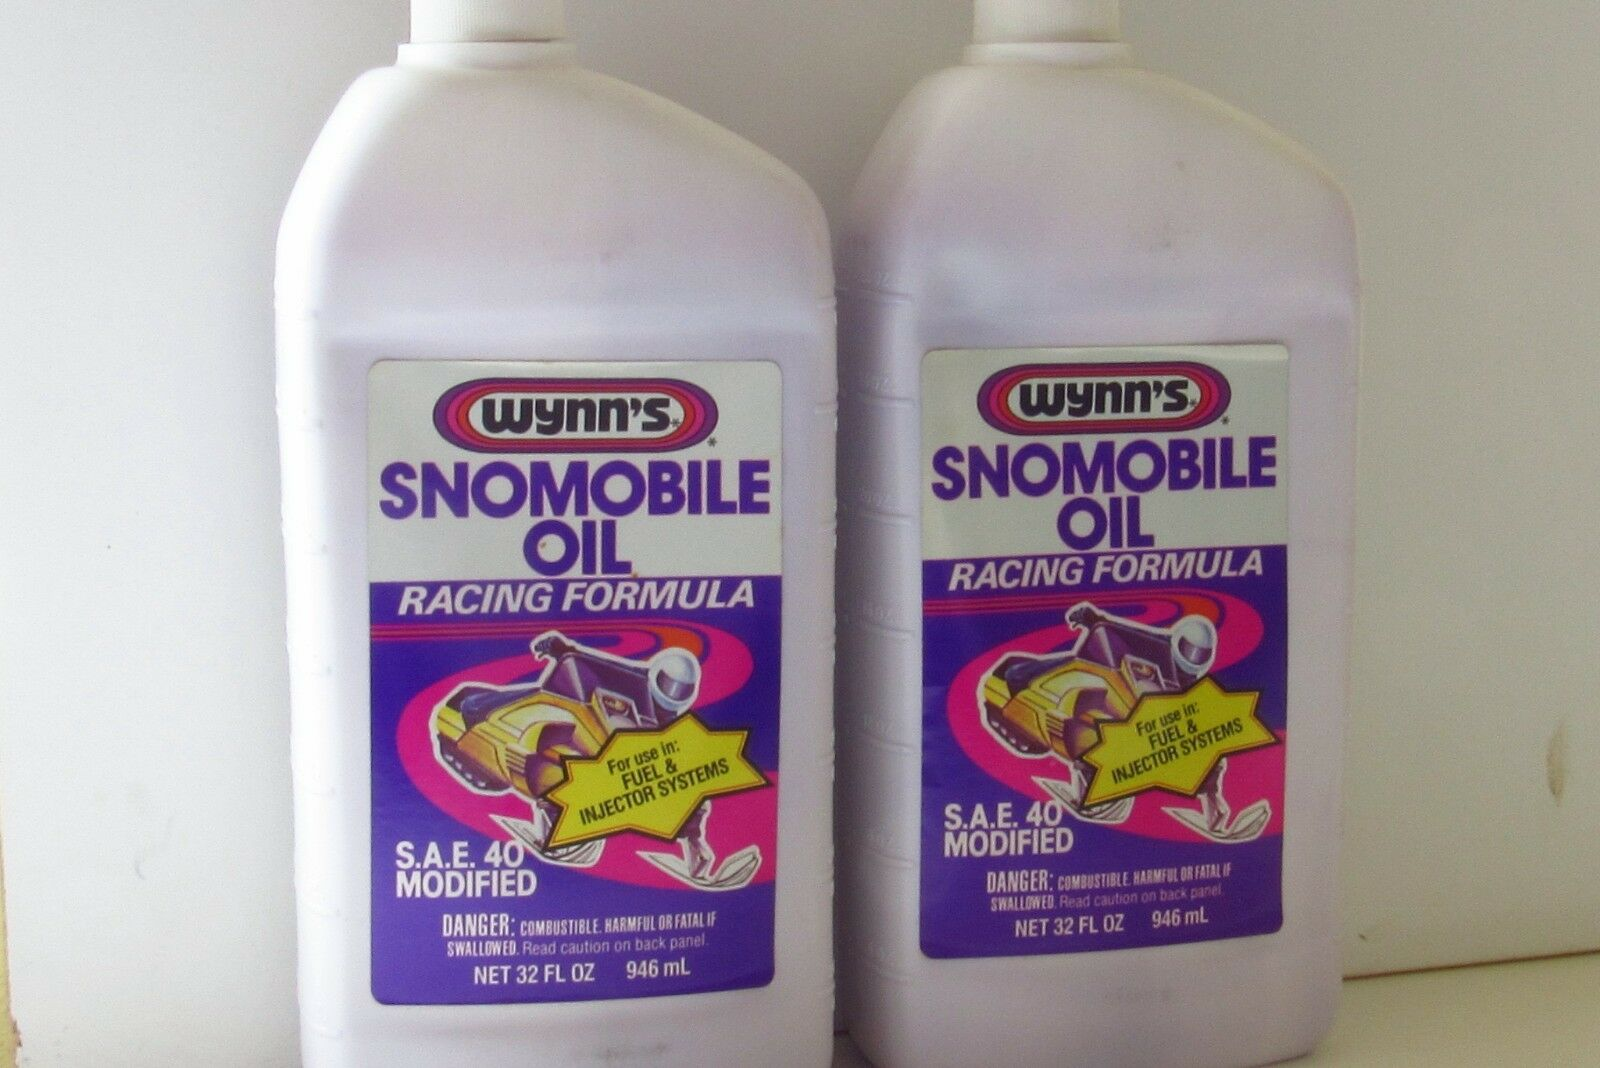 (2) Wynn's Snowmobile Oil Racing Formula SAE 40 Mod. 32oz PL. Bottles Snomobile